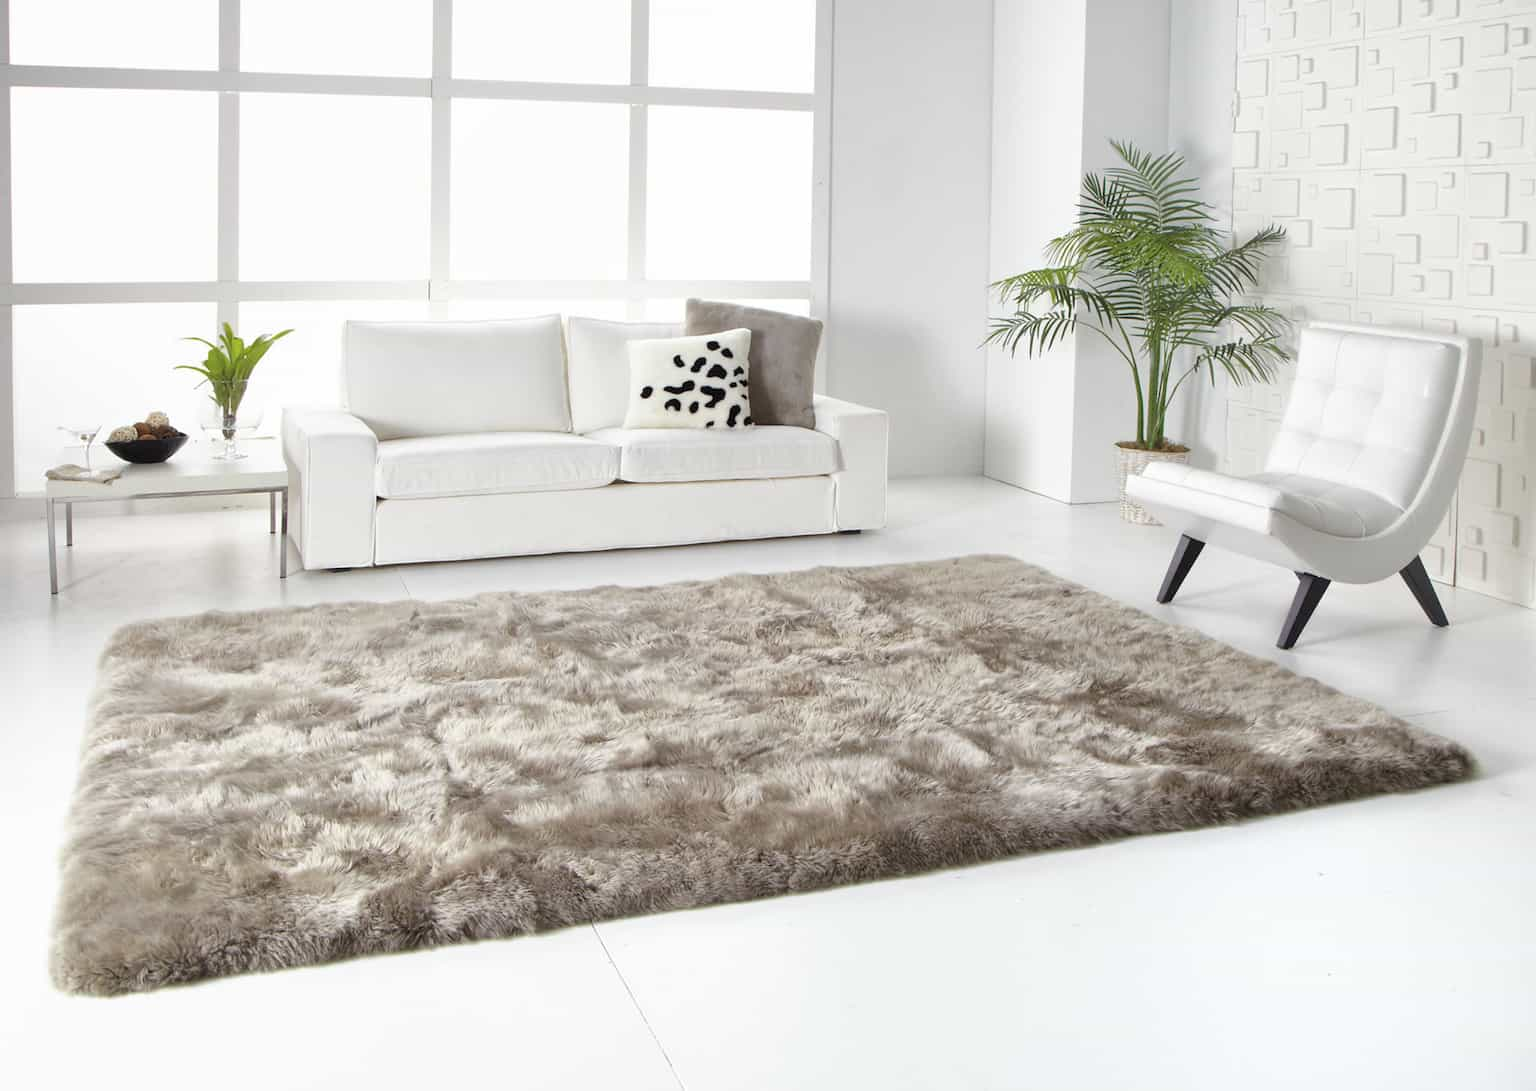 Elegance Living Room With Minimalist Chairs And Soft Sheepskin Fur Rug (Image 9 of 15)